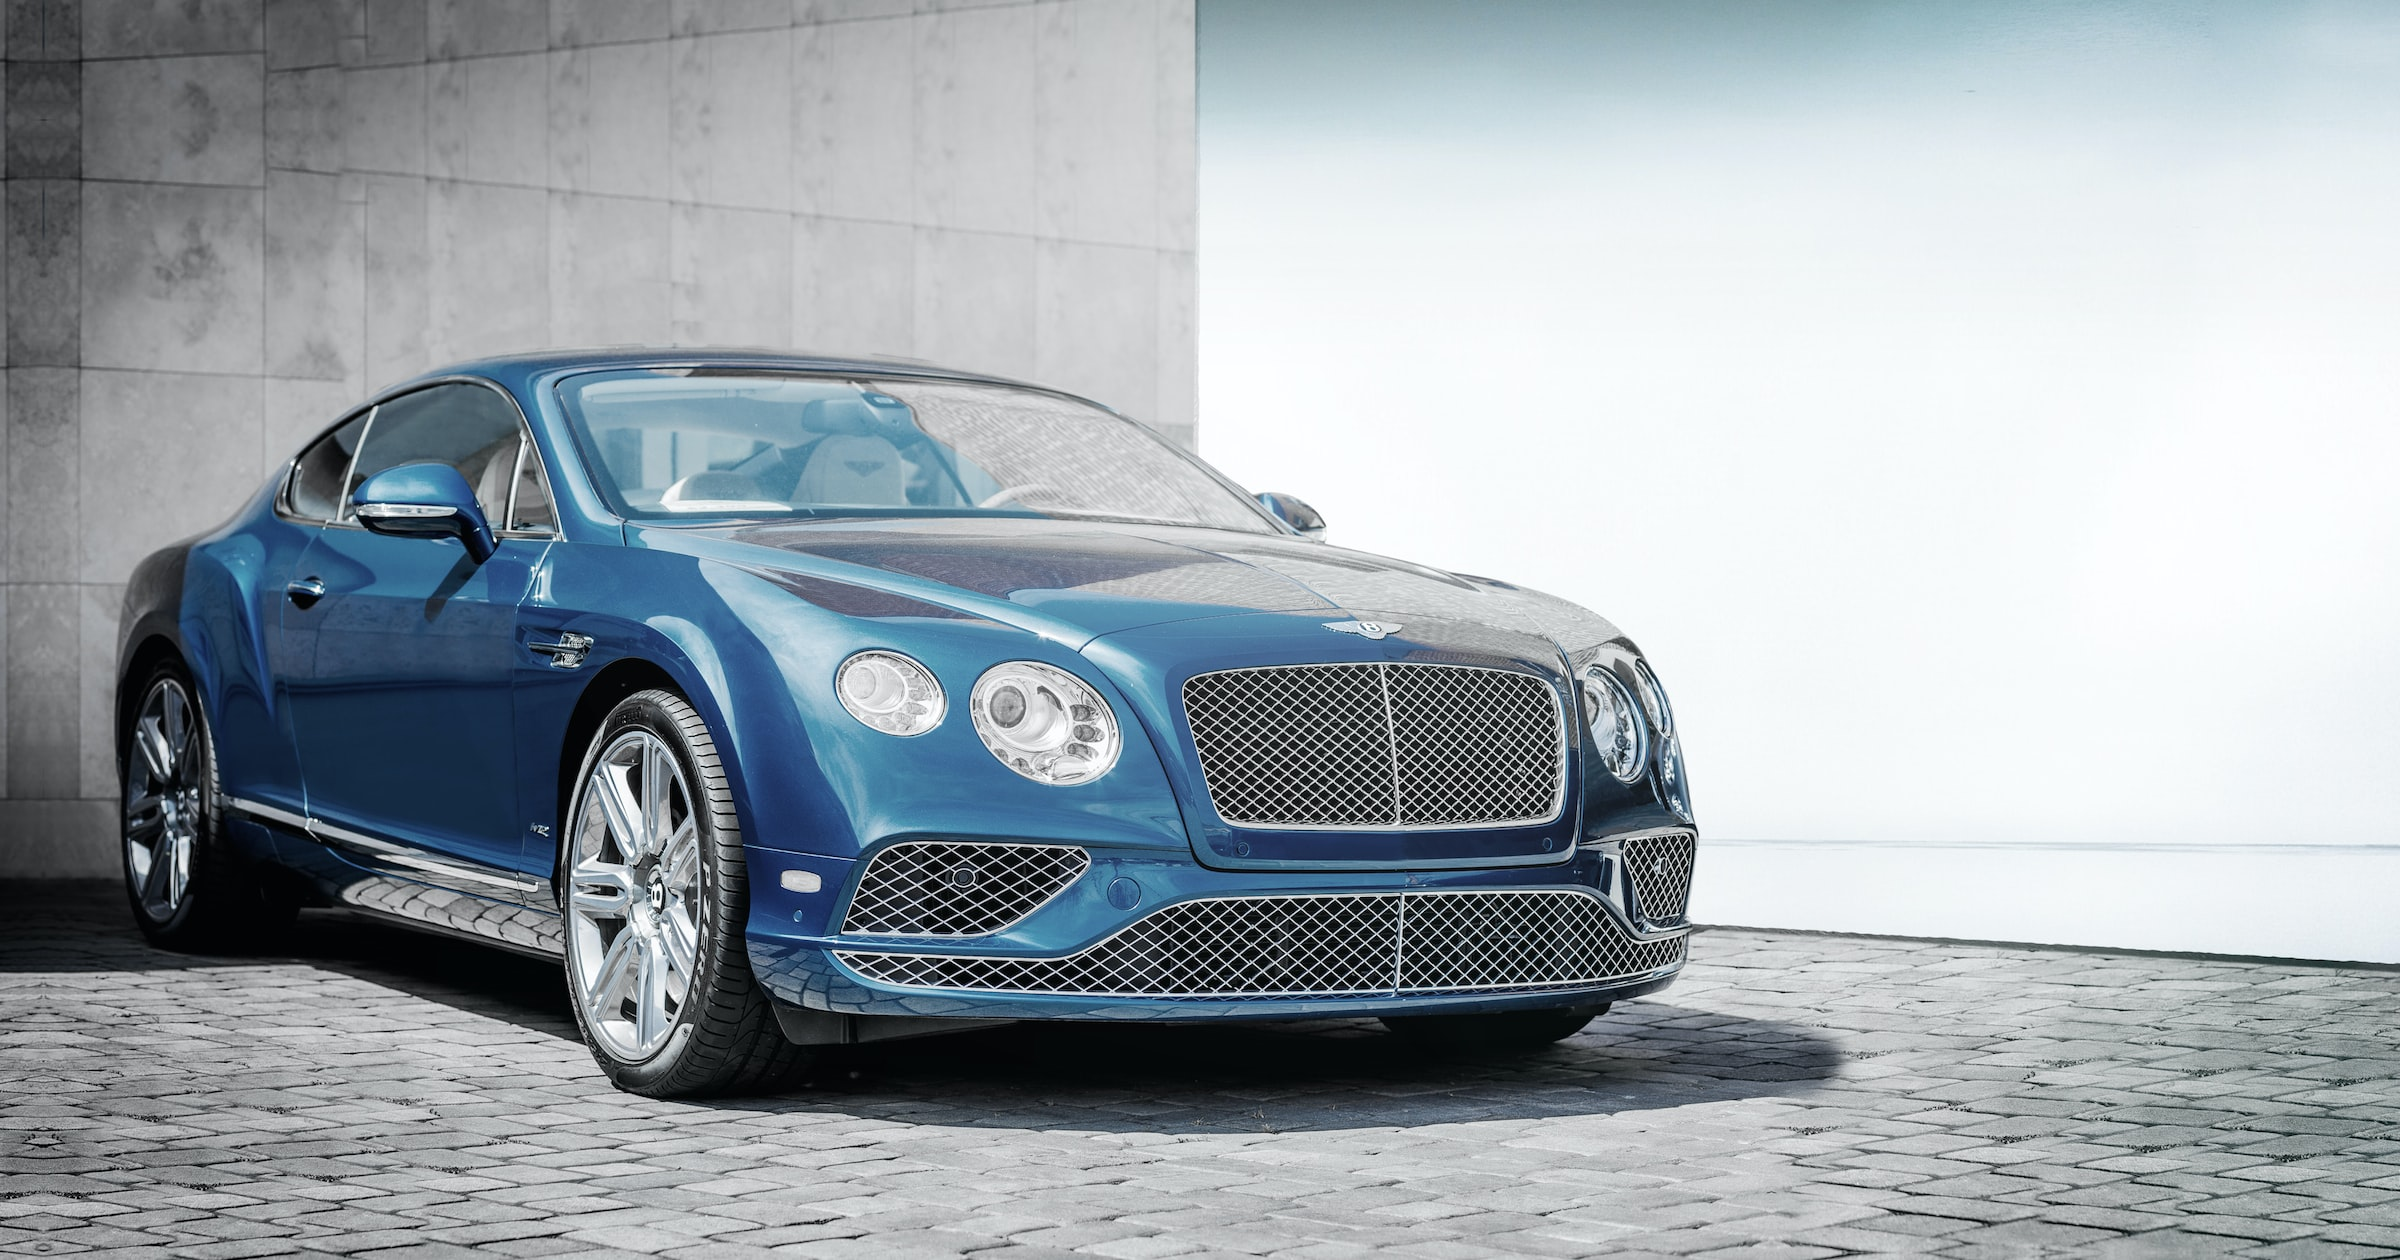 Luxury blue Bentley car parked on a gray street